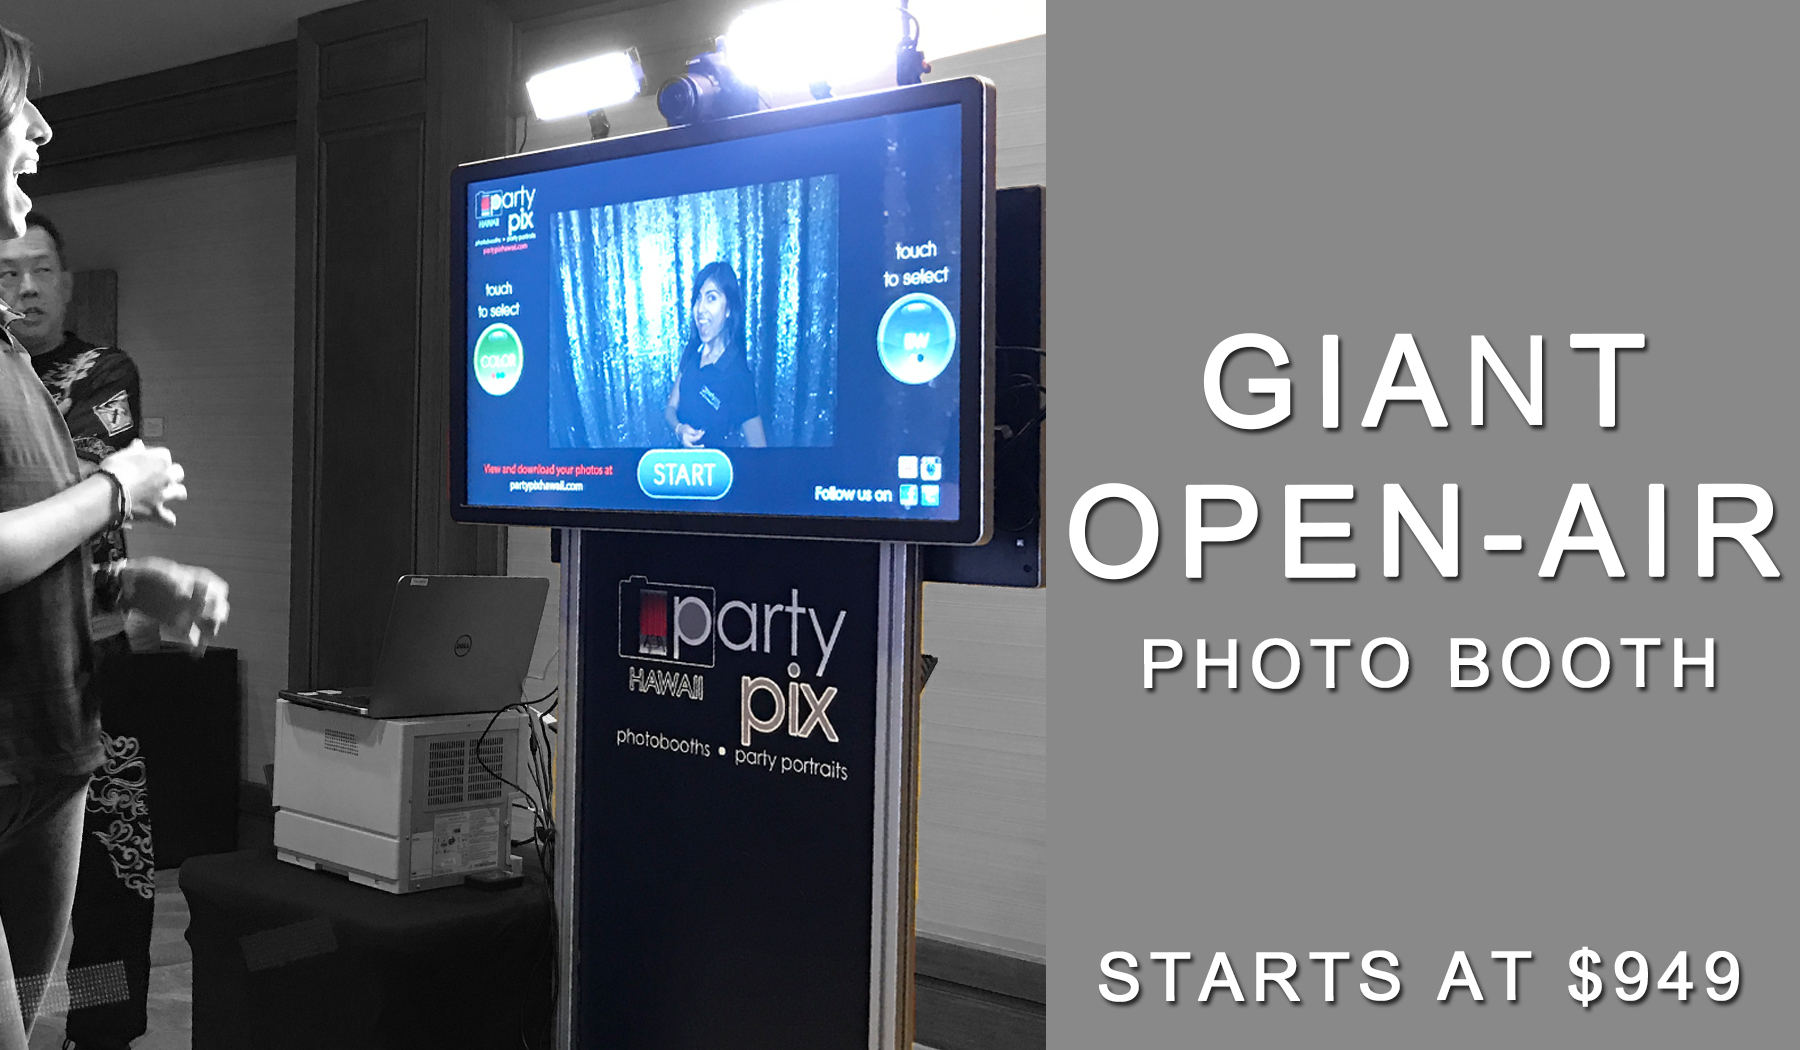 Giant Photo Booth